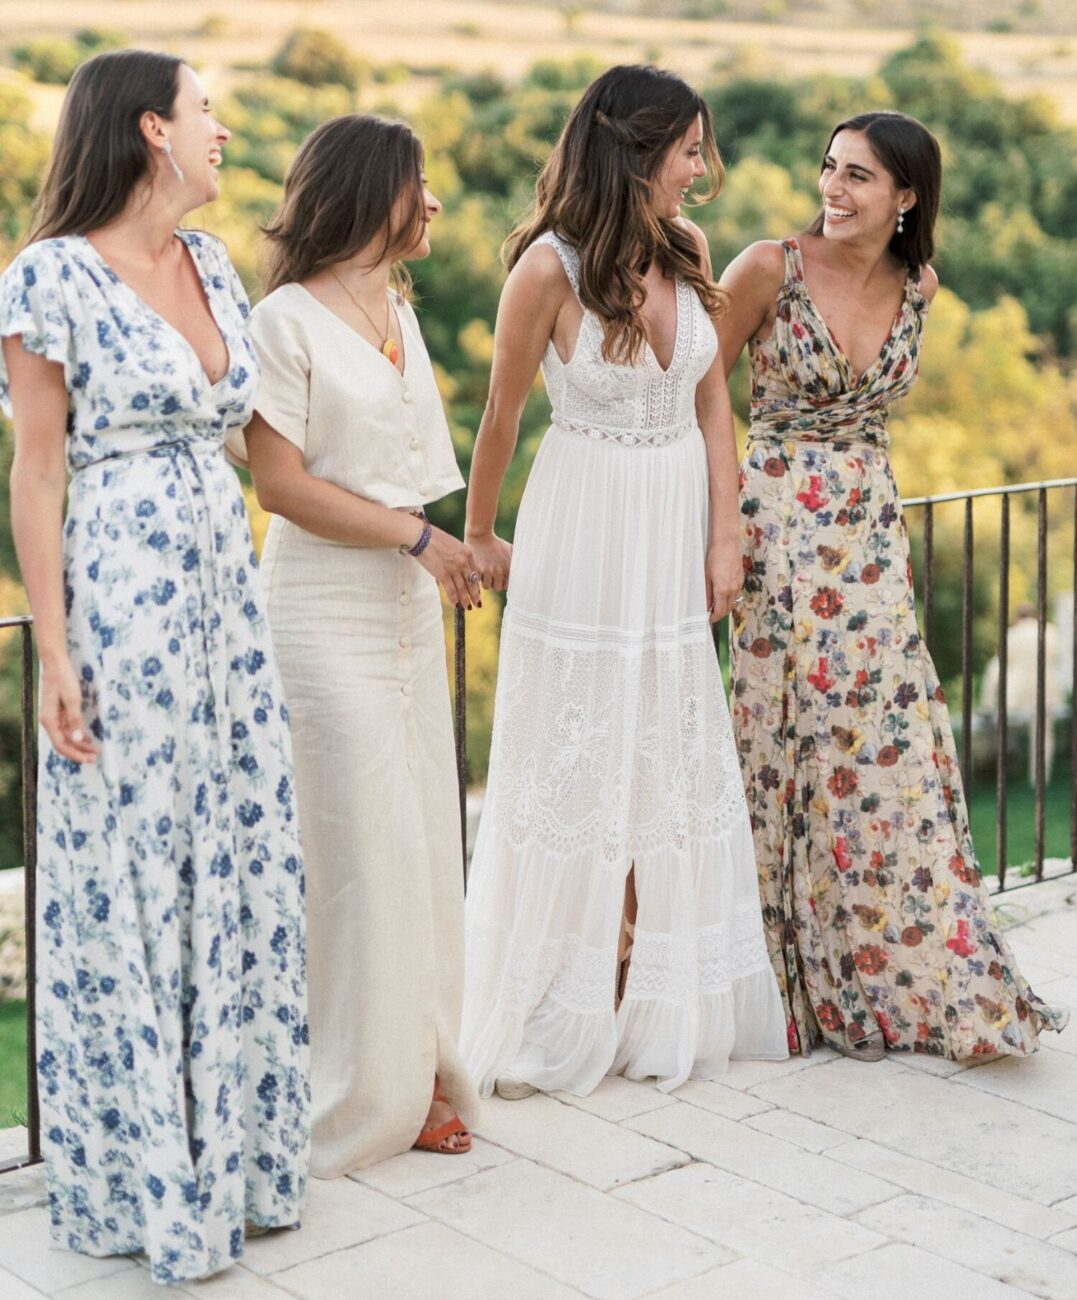 destination wedding in Italy - bride and her friends smiling and posing for photographs after the wedding ceremony in tuscany